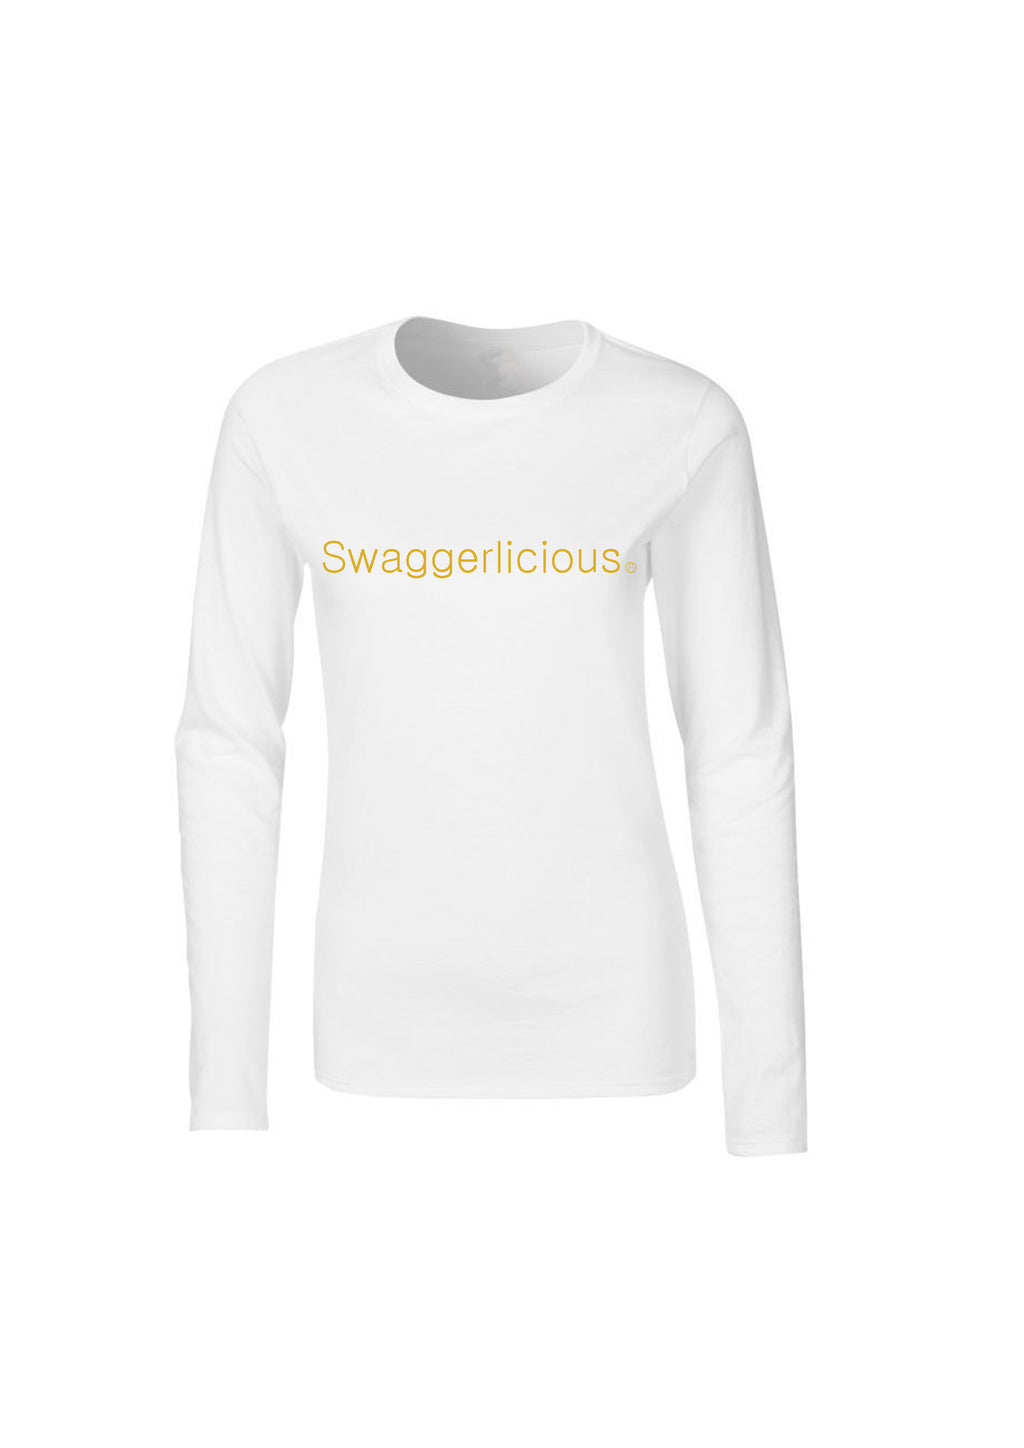 WHITE SWAGGERLICIOUS LADIES LONG SLEEVE TOP - swaggerlicious-clothing.com